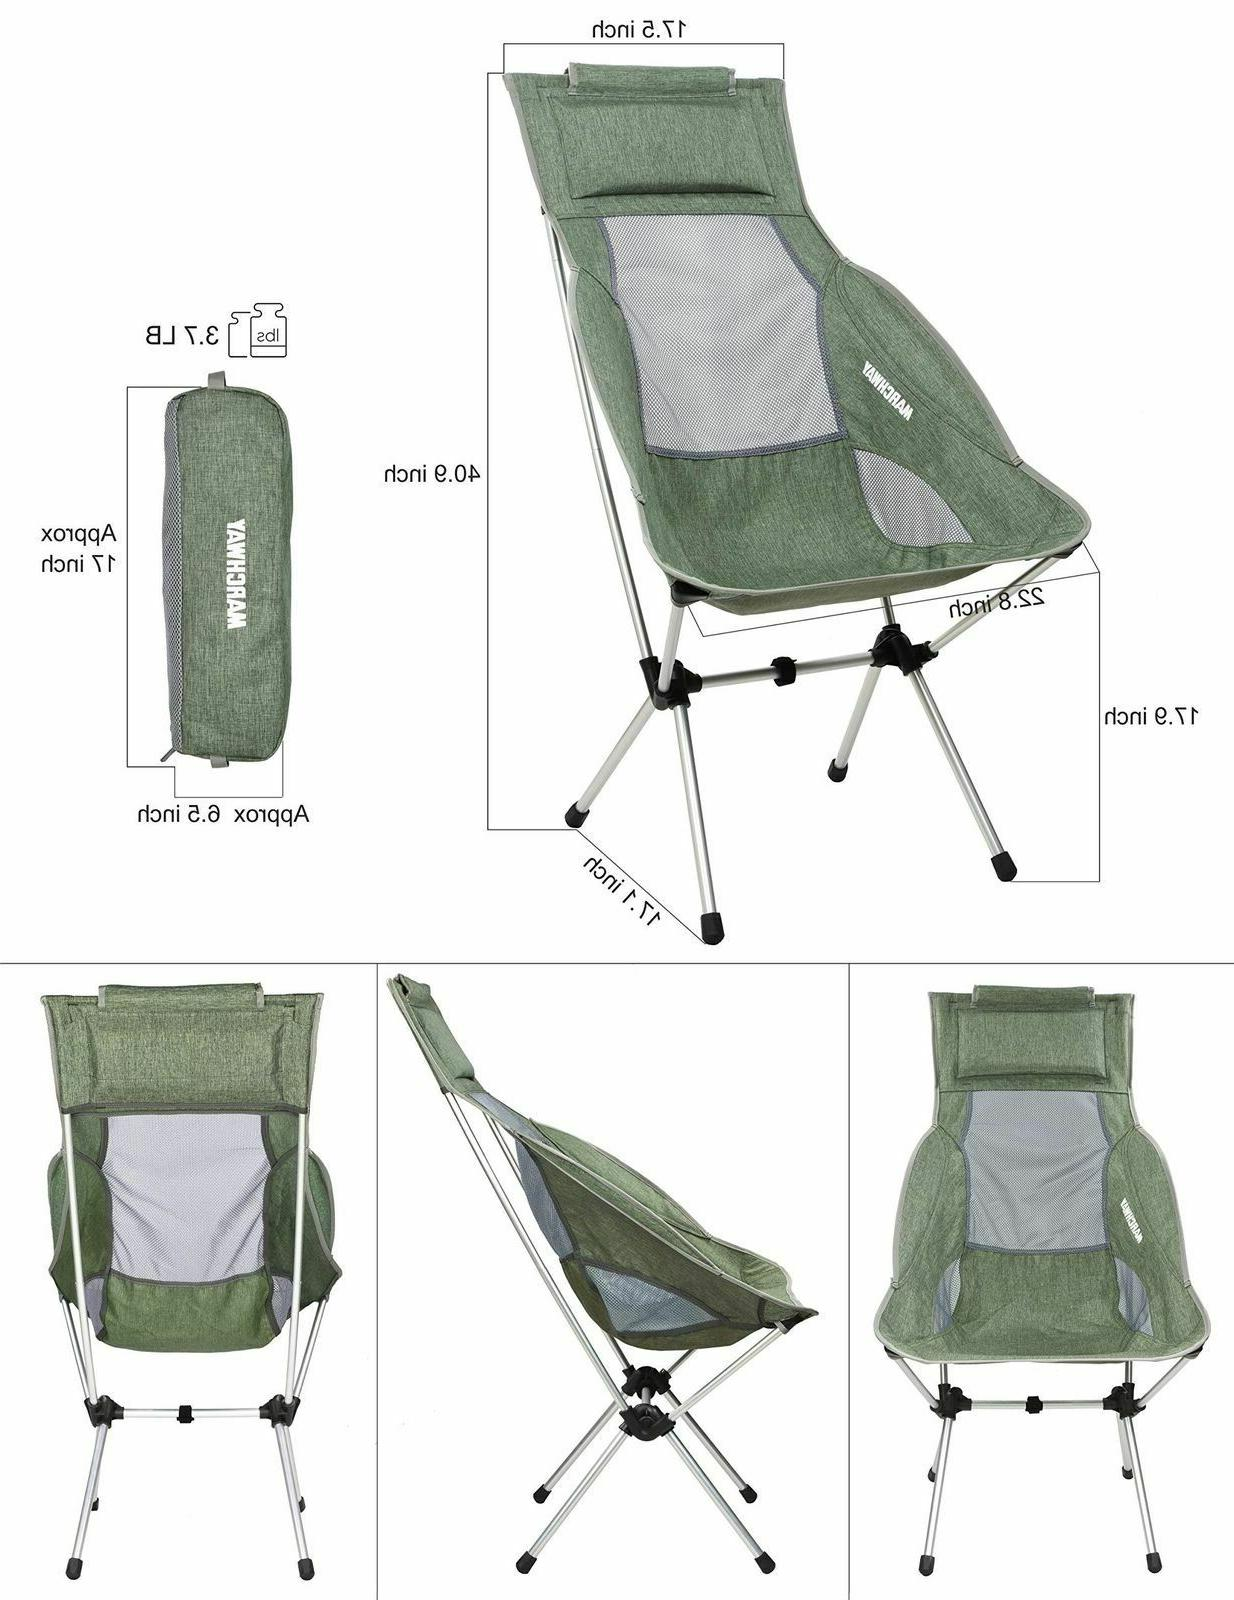 MARCHWAY High Camping Headrest Portable